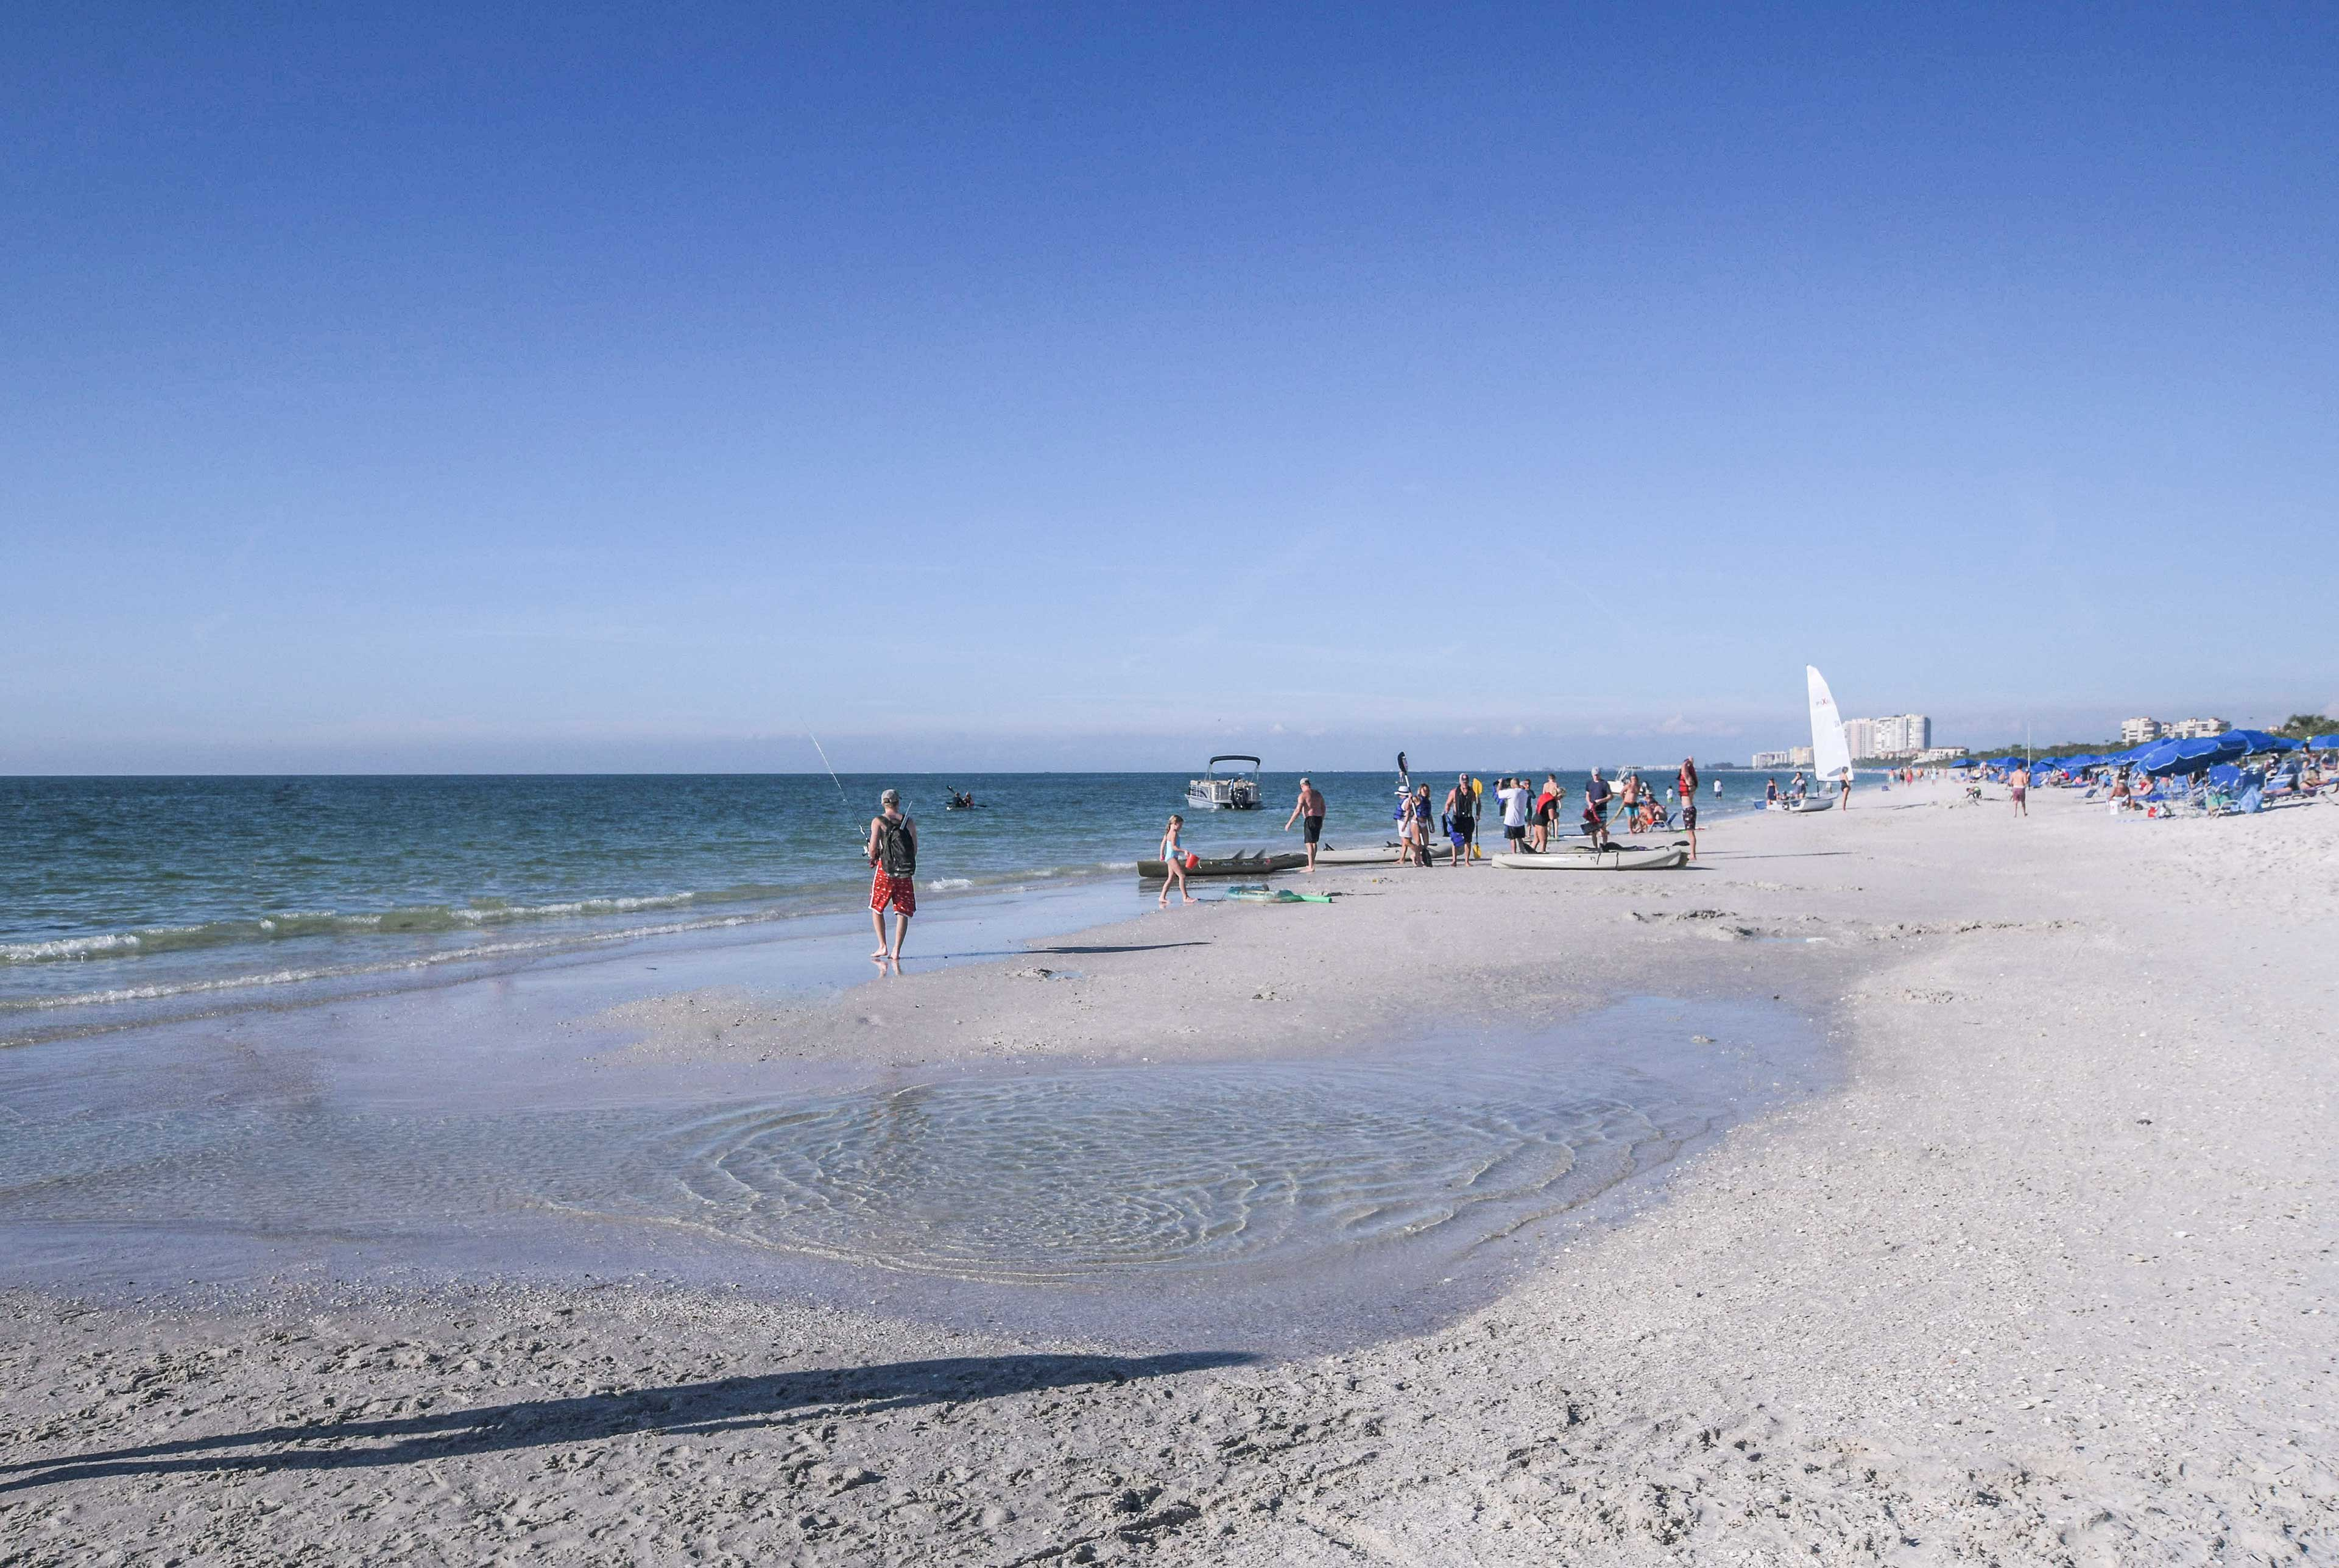 Bring the provided beach towels, chairs and cooler to the beach!